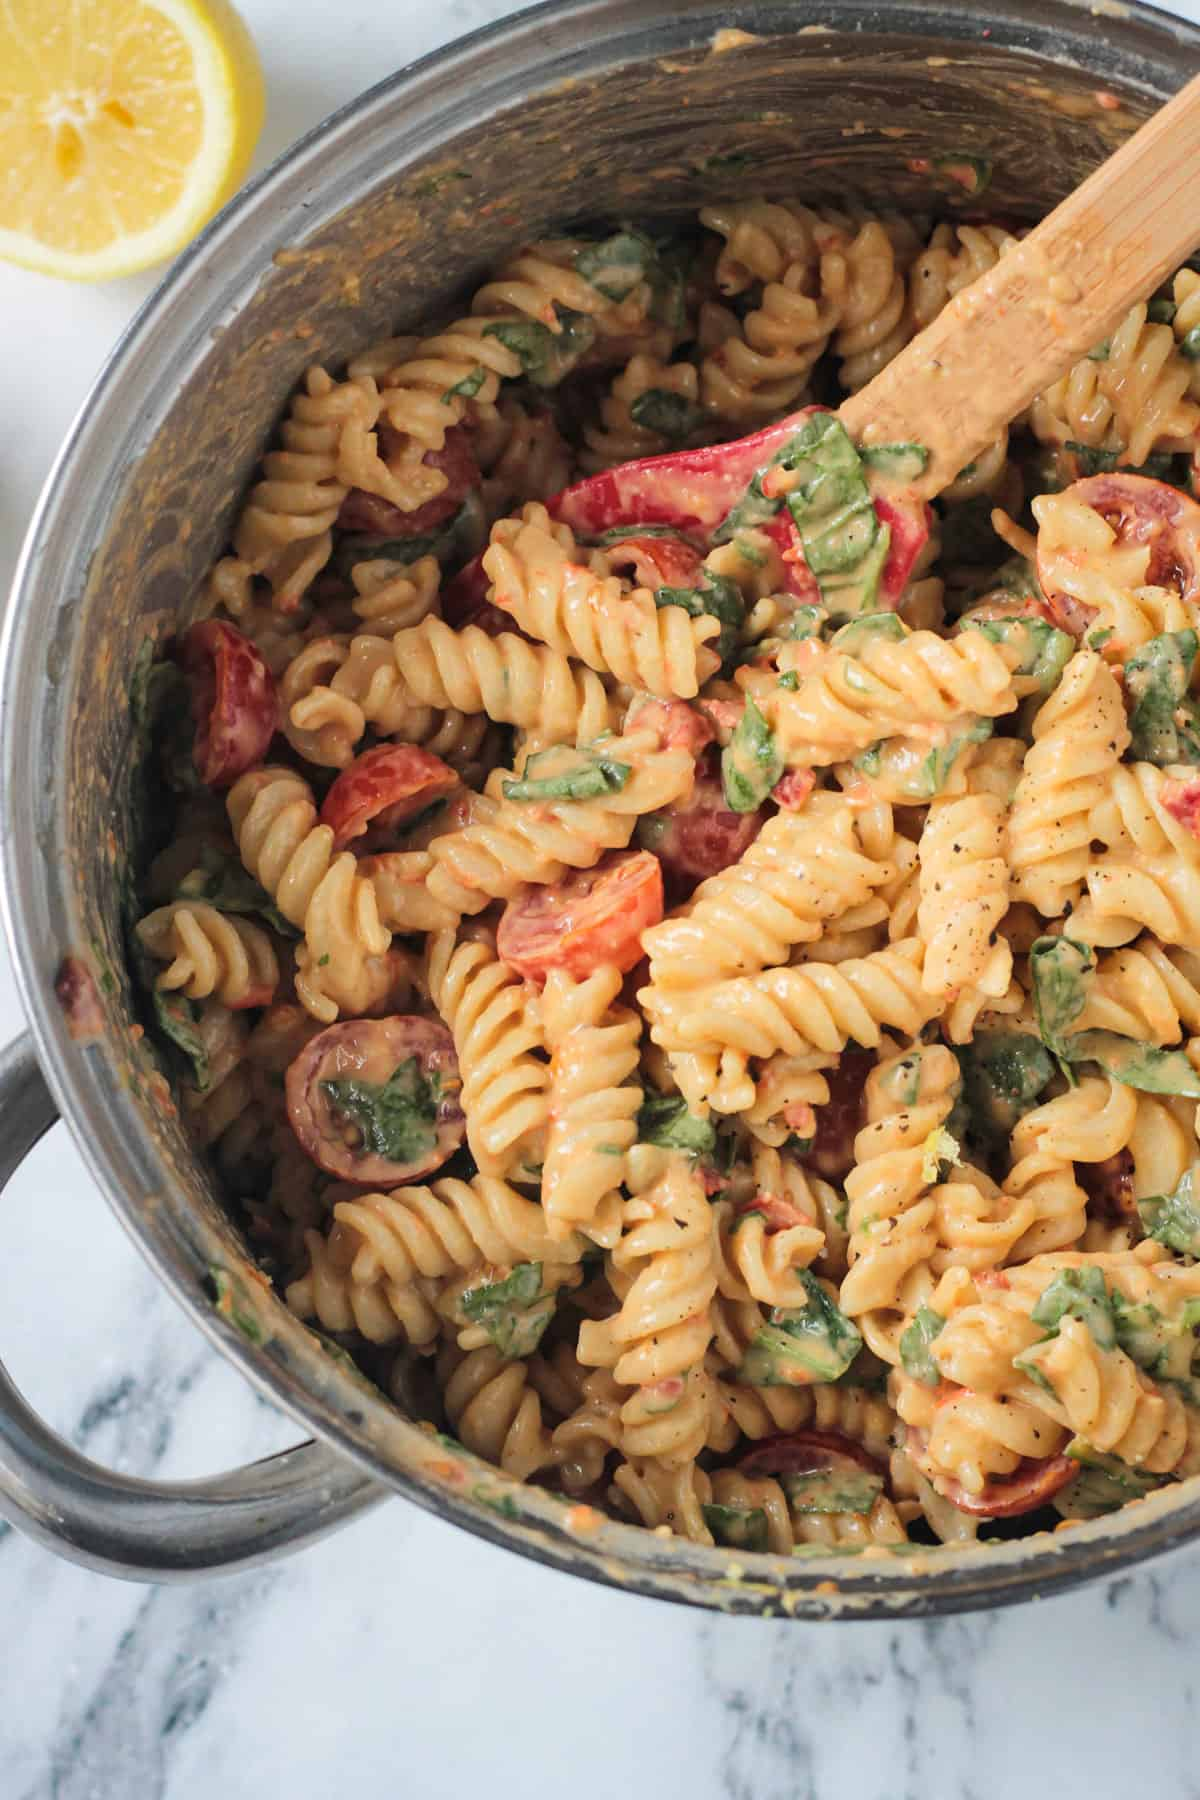 Red spatula stirring noodles in a pot with sauce, tomatoes, & spinach.